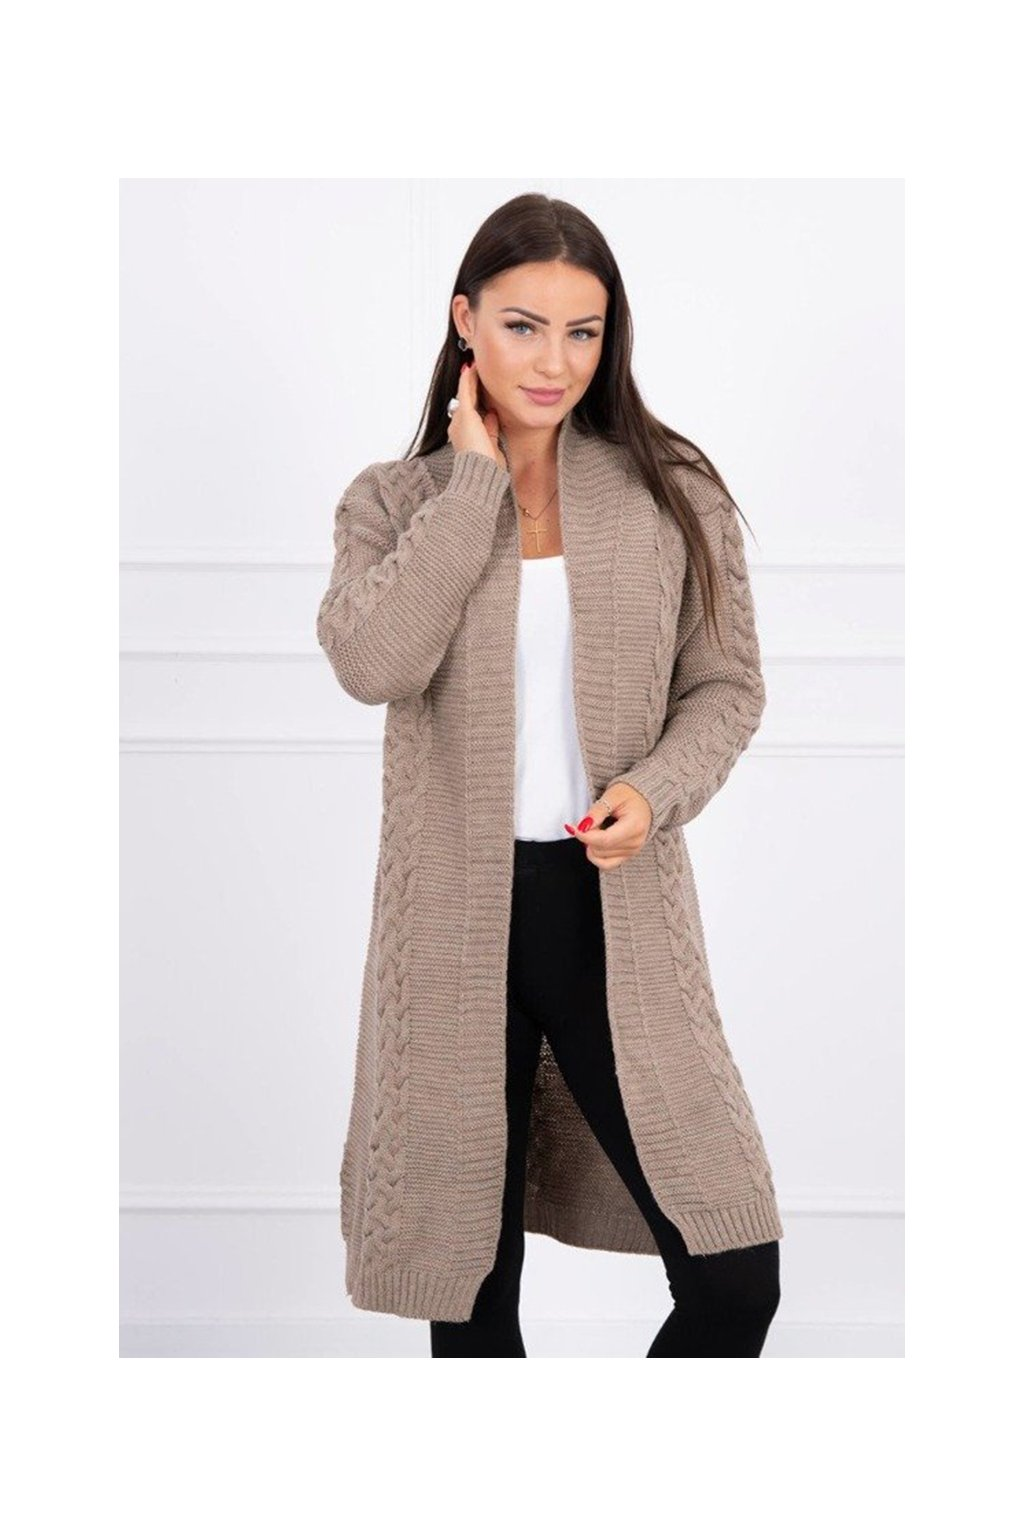 eng pm Sweater Cardigan weave the braid capuccino 15735 2